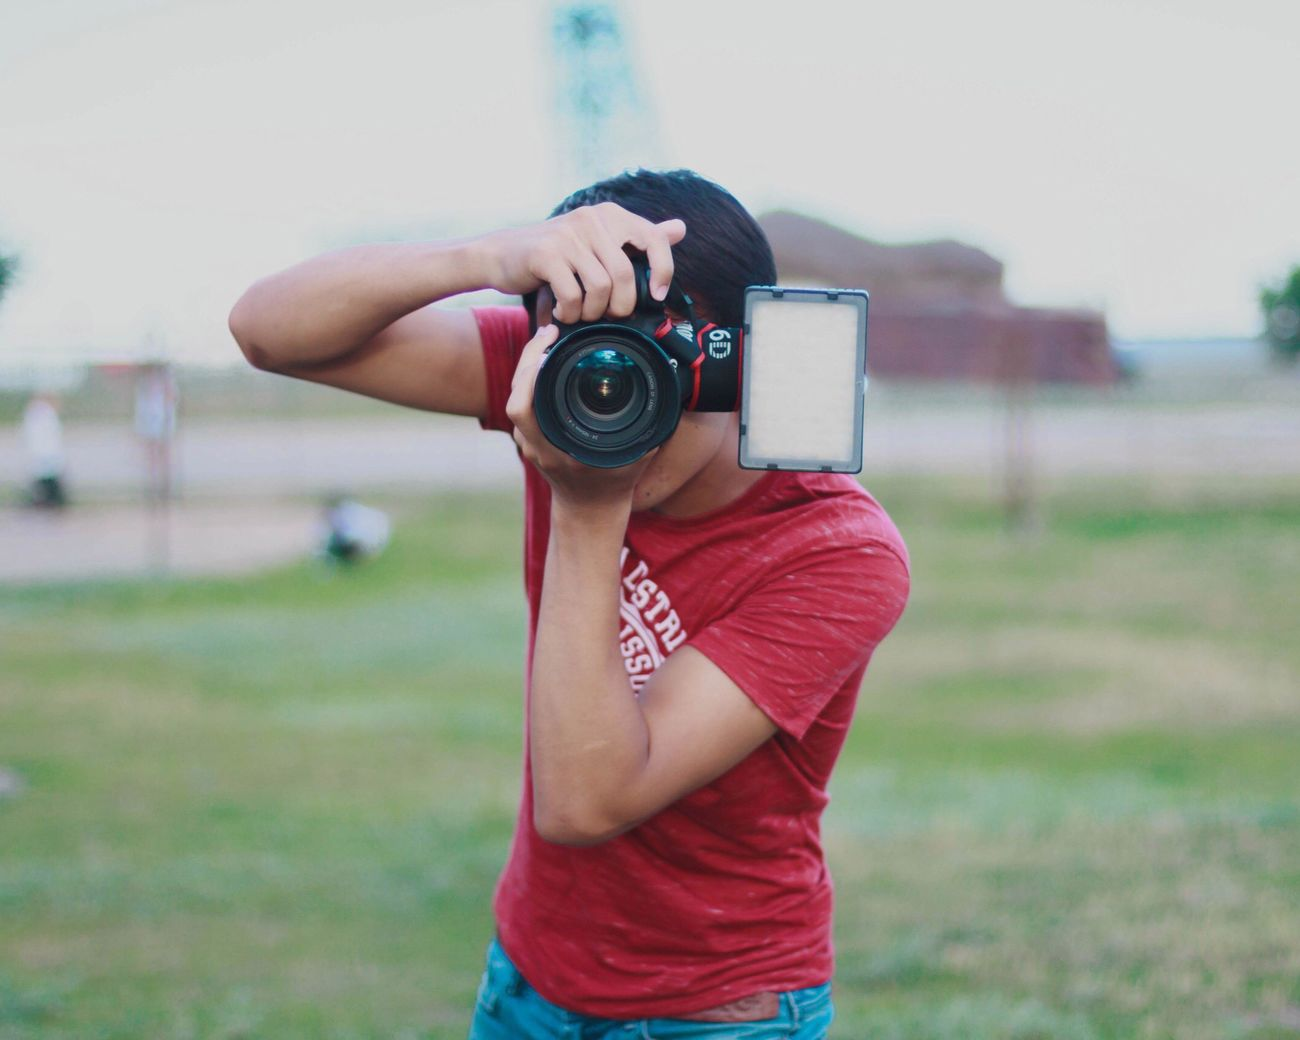 Canon photography Lifestyles Photography Person Focus On Foreground Day